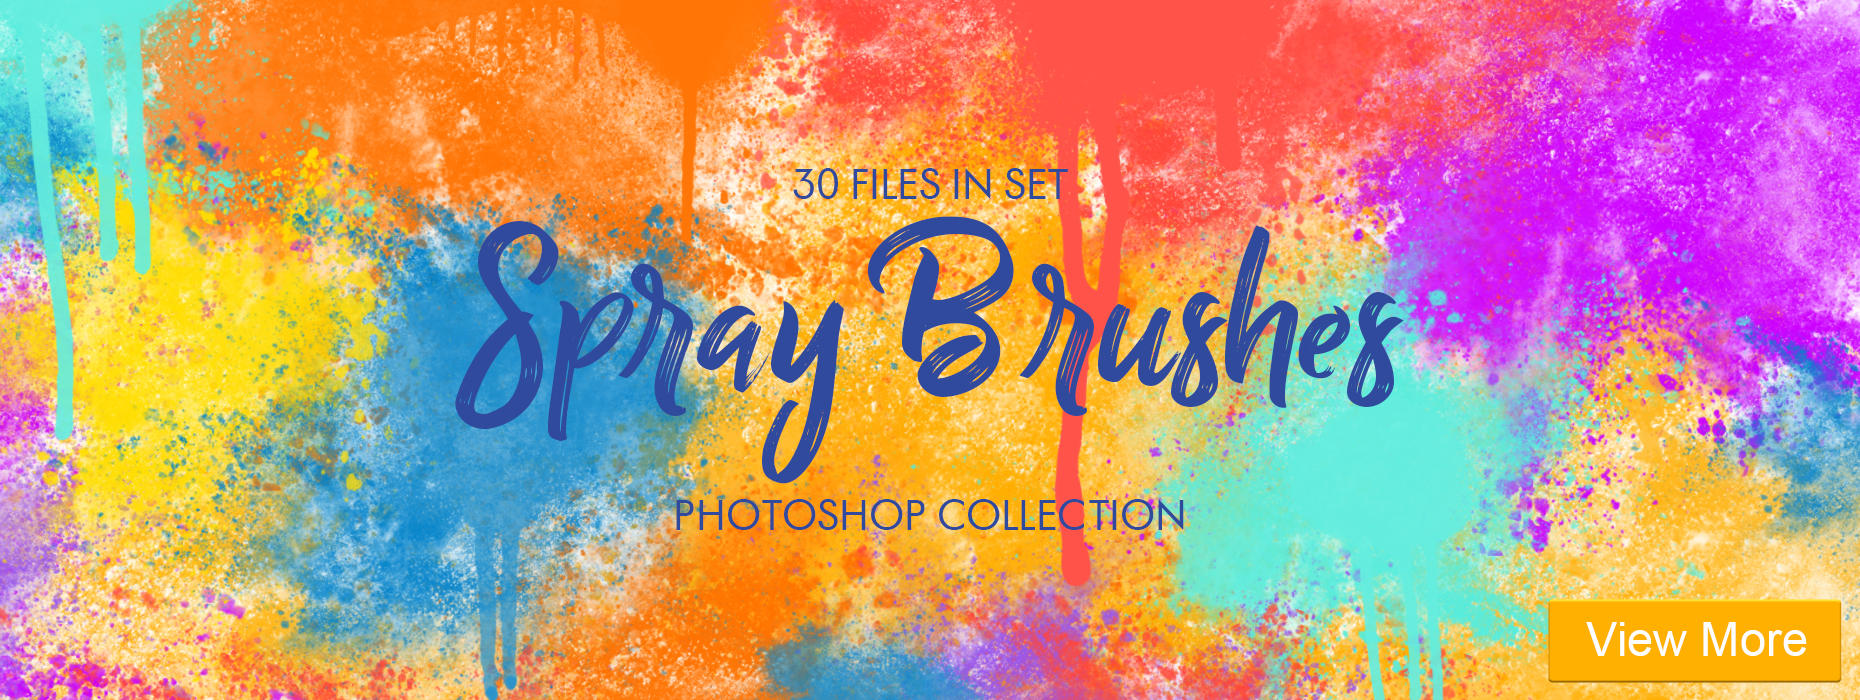 free watercolor brushes photoshop  30 files in set spray brushes photoshop collection banner